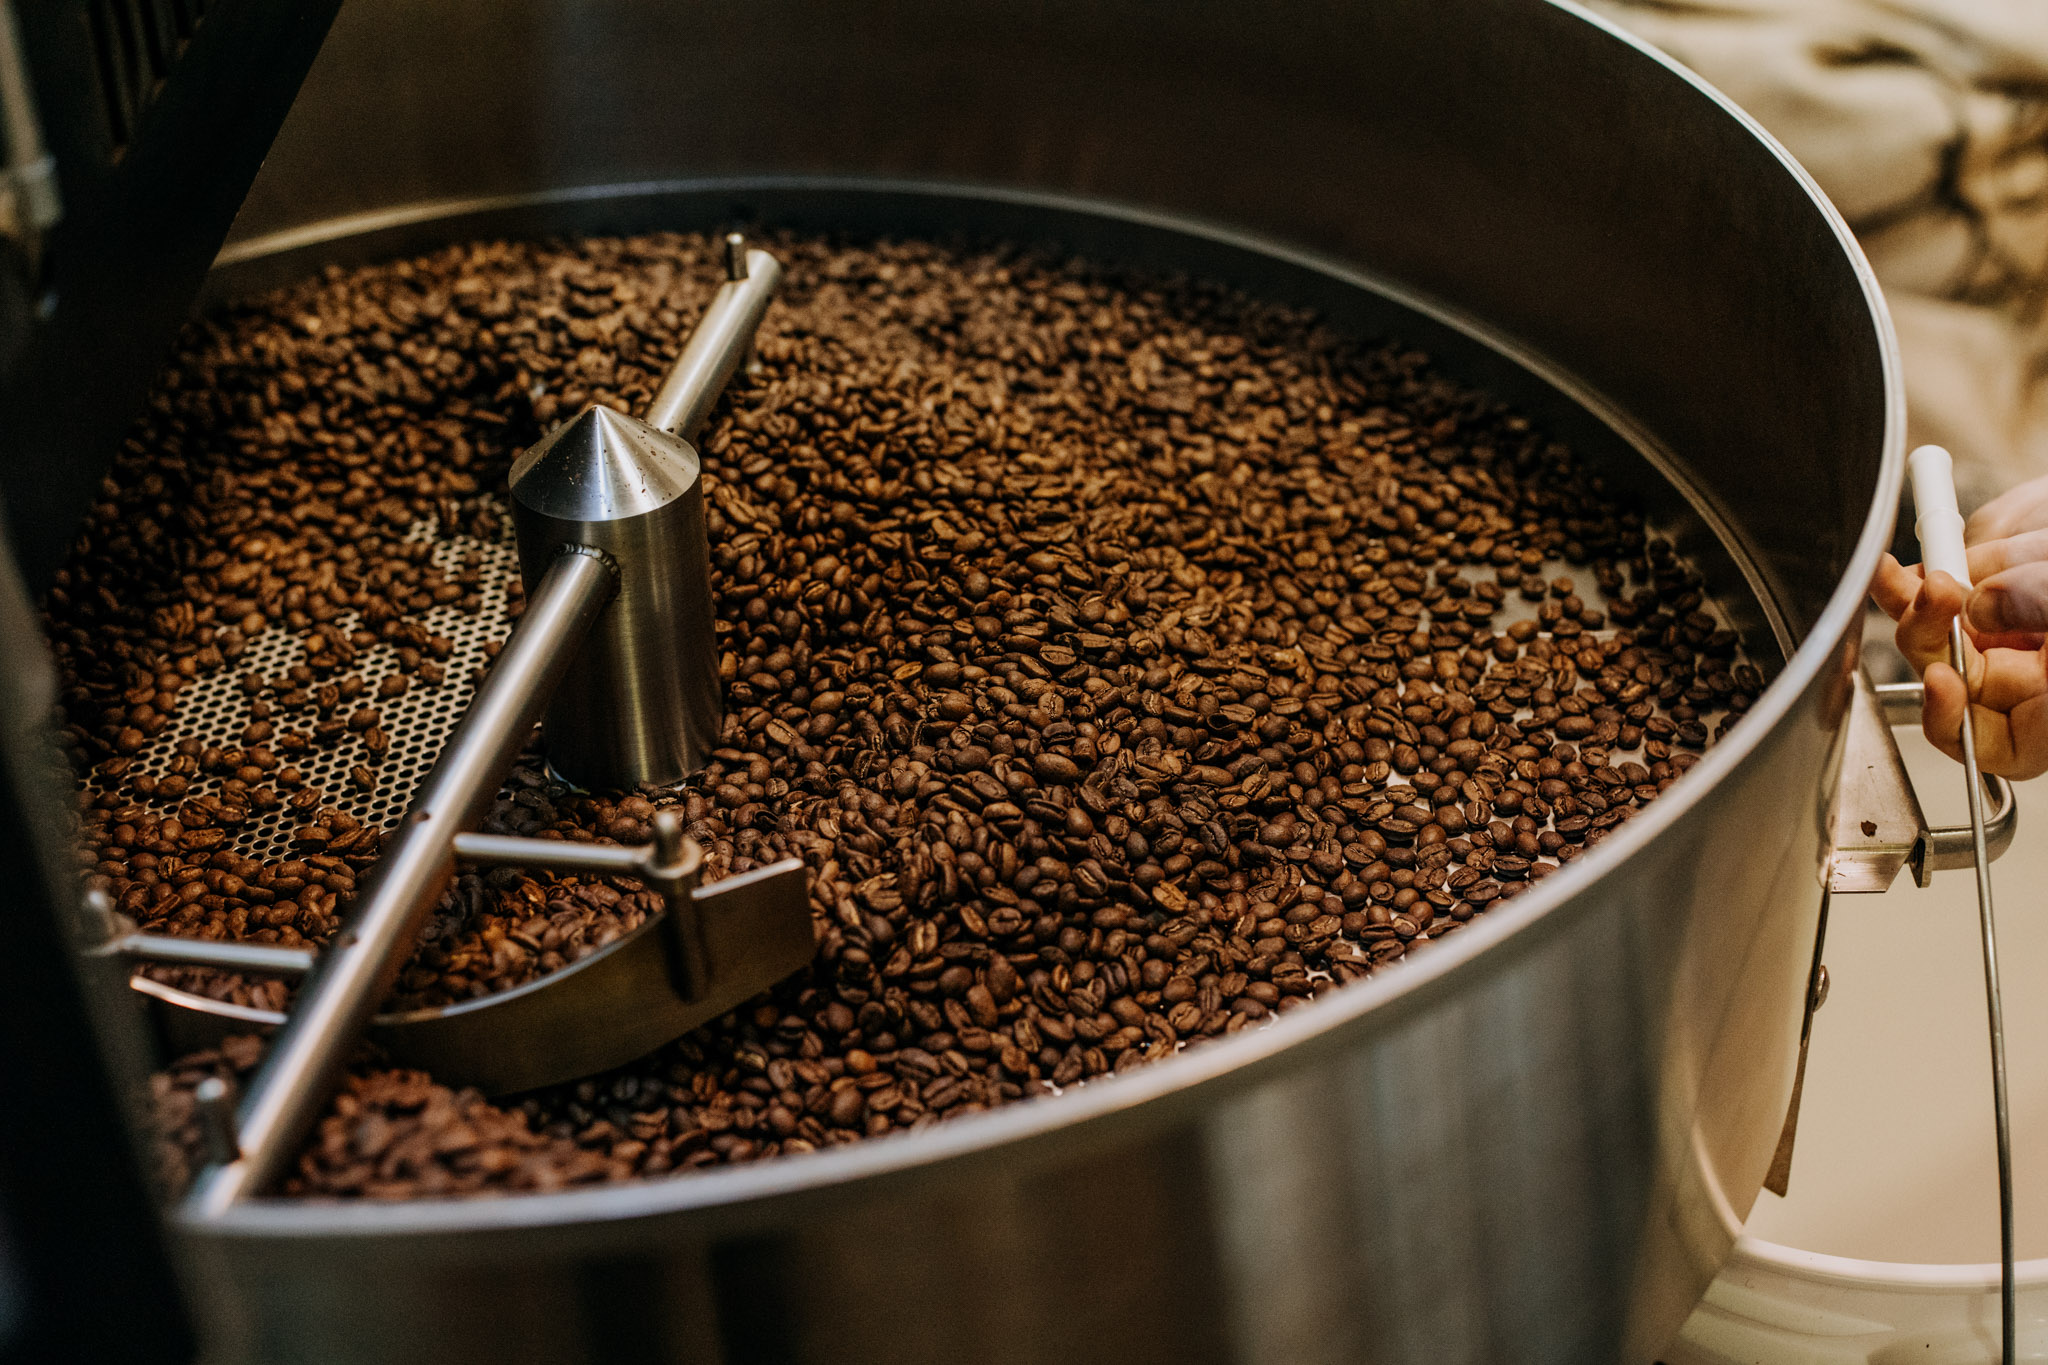 Signature Roasts - We love working closely with our various wholesalers and together discovering a coffee that perfectly fits with your individual mission, clientele, taste preferences, and aesthetic. Due to our small batch roasting operation, you have the option to chose an origin or blend that is original to you and roasted to your preferences. Inquire below to ask about setting up a personalized tasting event.